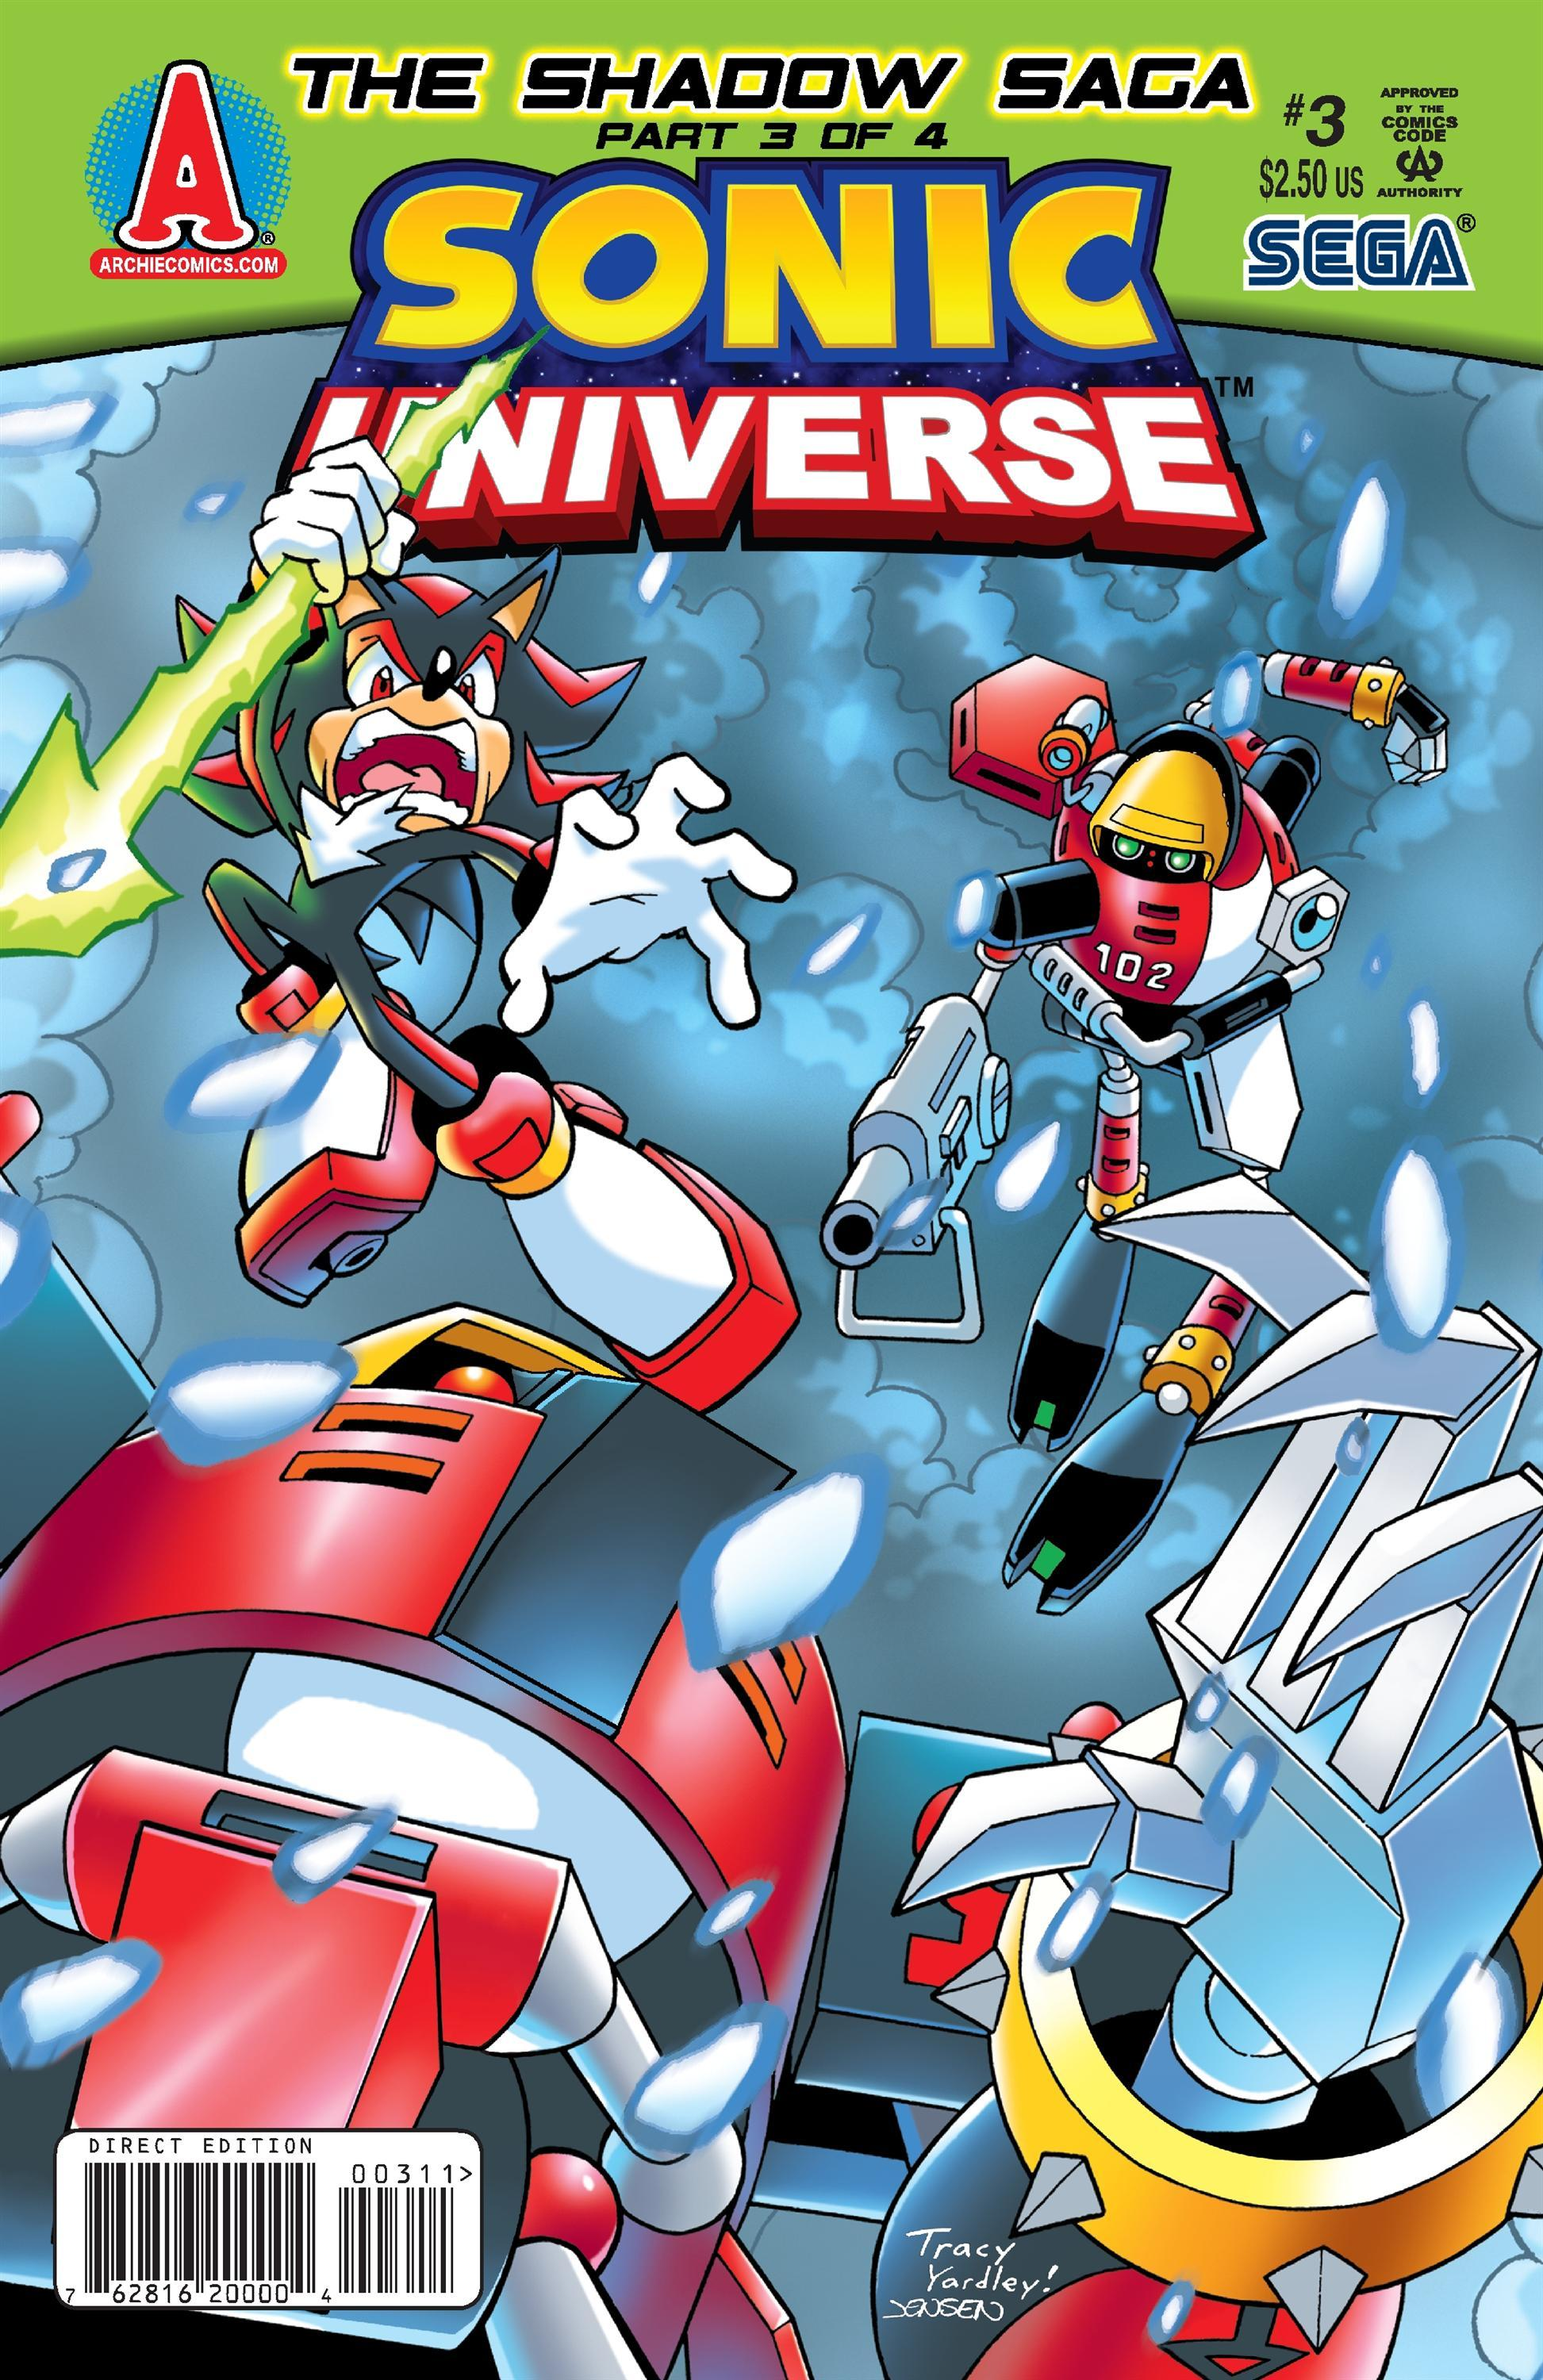 Sonic Universe Issue 3